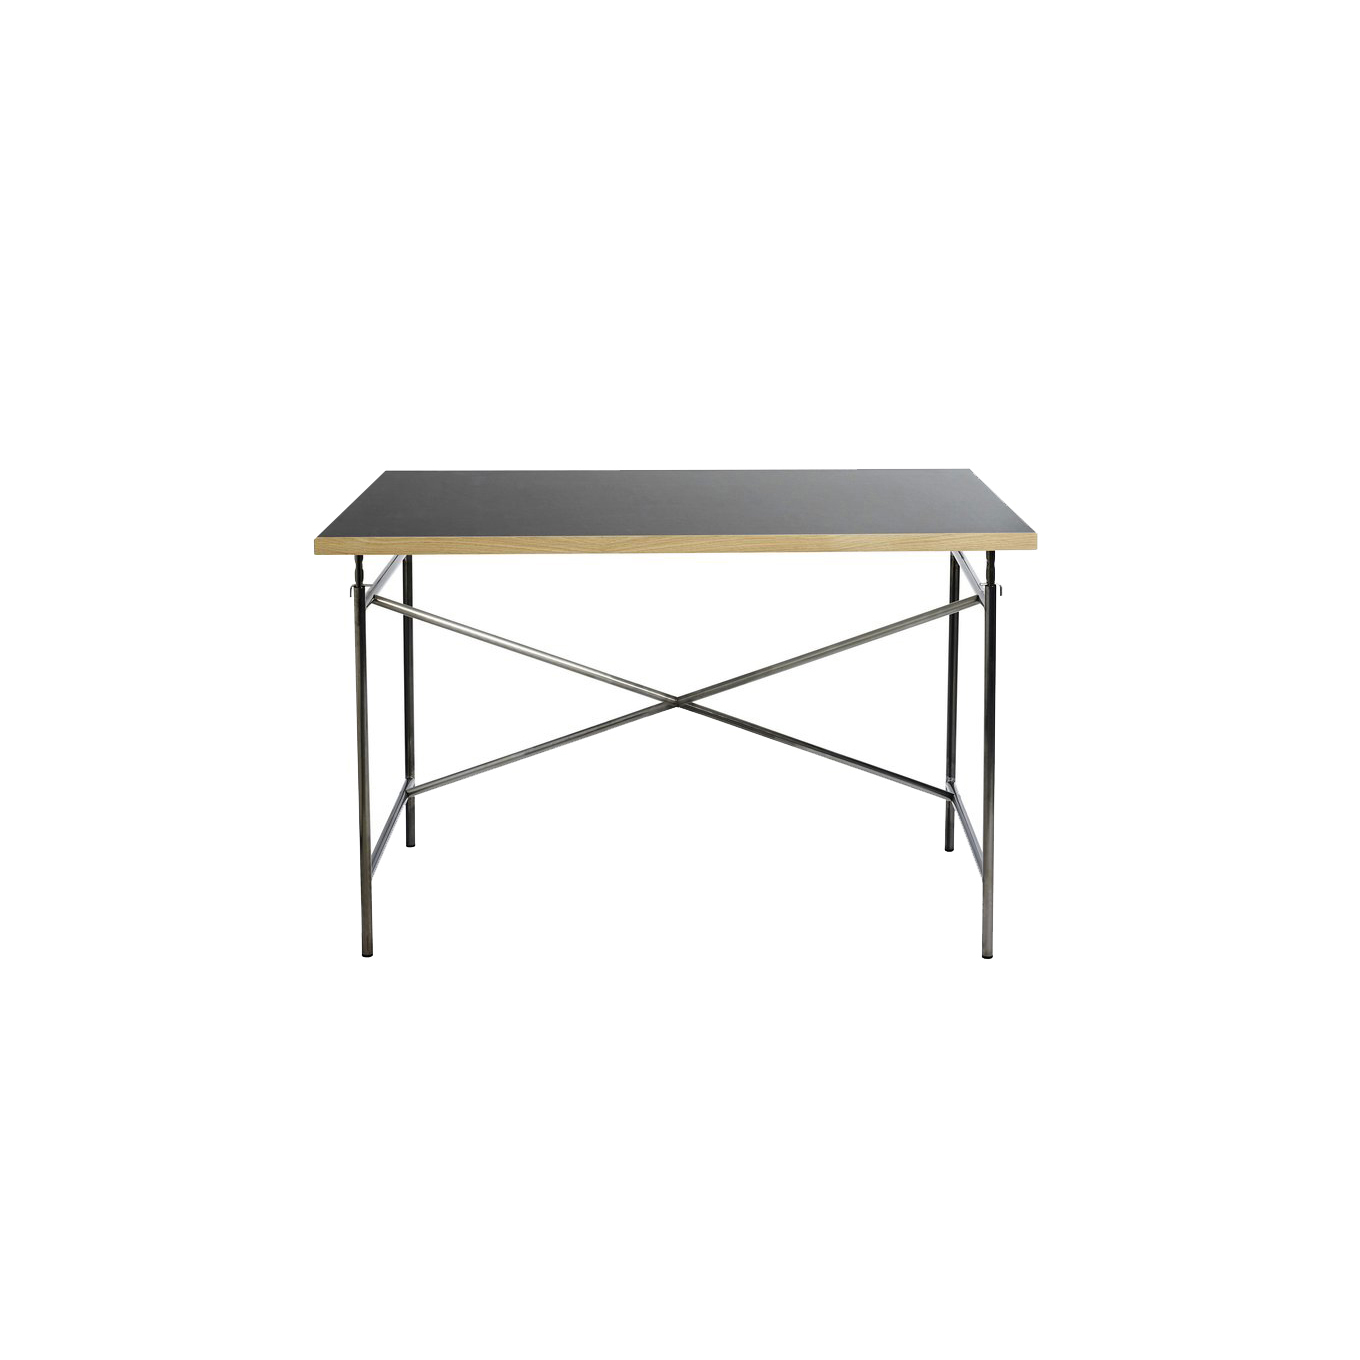 Eiermann 1 Writing Desk 120 x 80